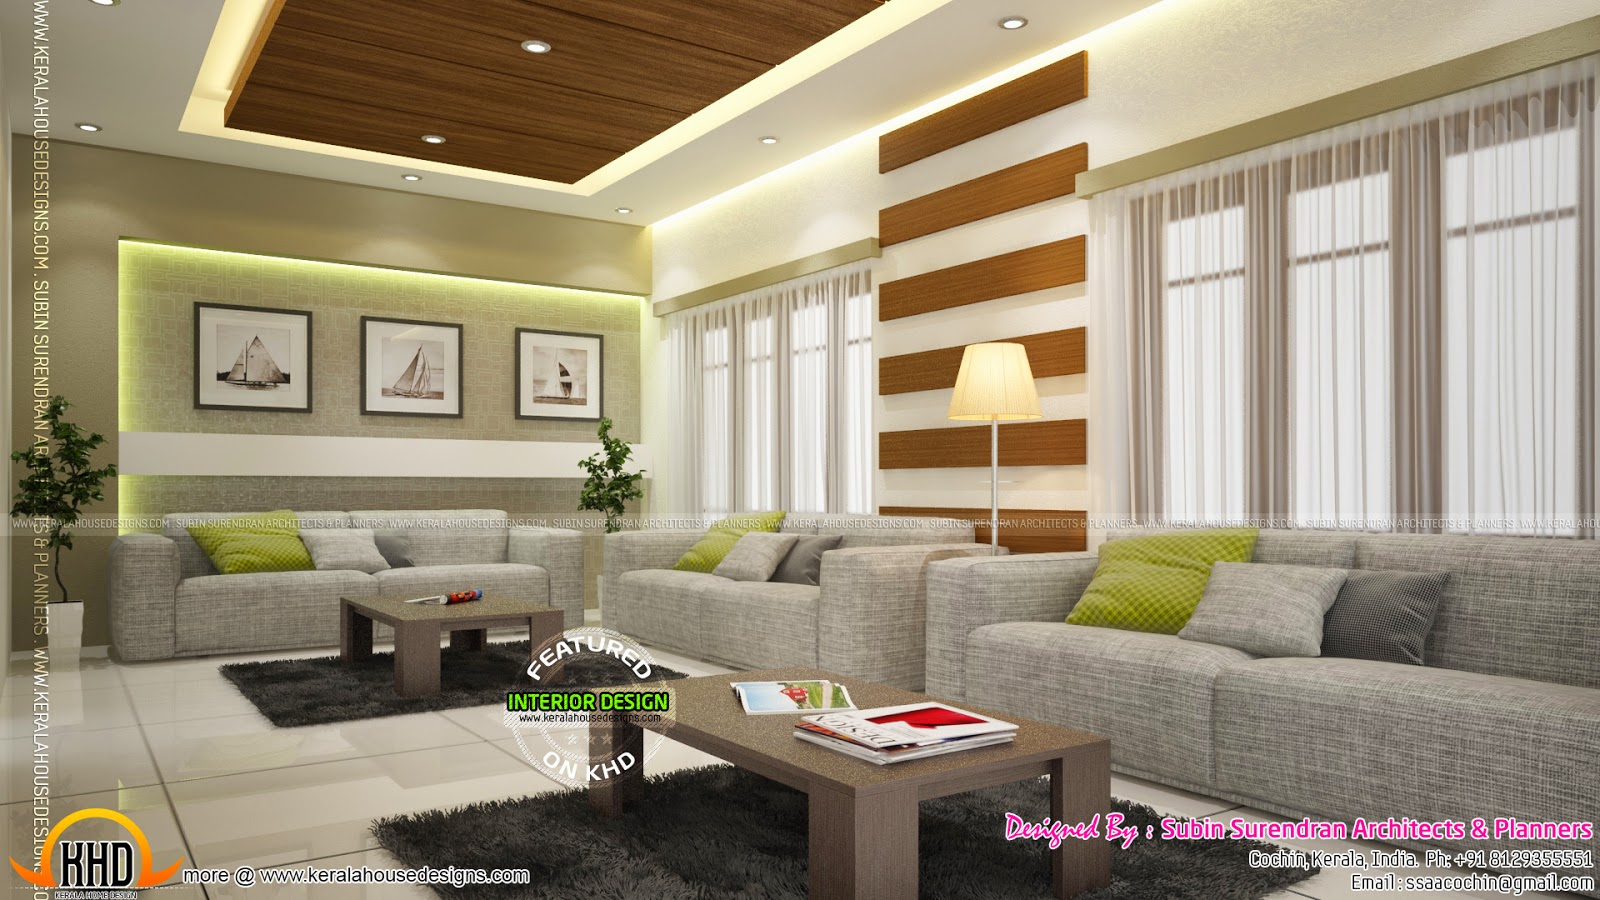 Beautiful home interior designs kerala home design and for Living room design ideas kerala